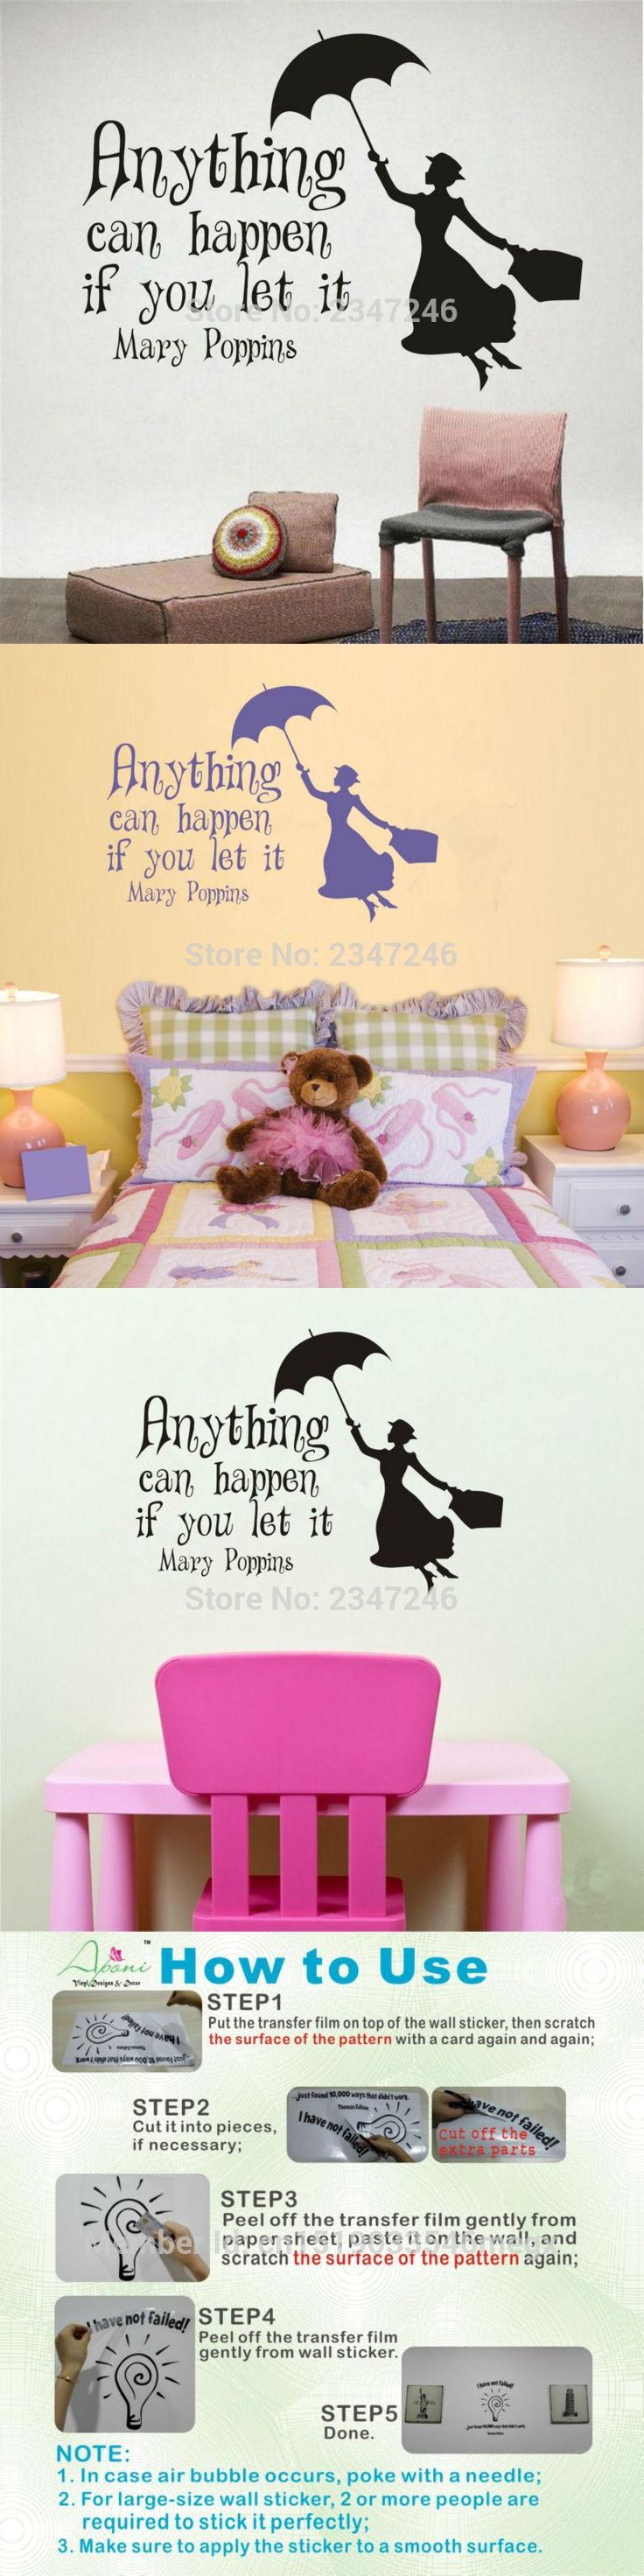 Best 25 mary poppins quotes ideas on pinterest disney quotes to mary poppins quote anything can happen if you let it fairytale vinyl wall decal sticker art amipublicfo Image collections